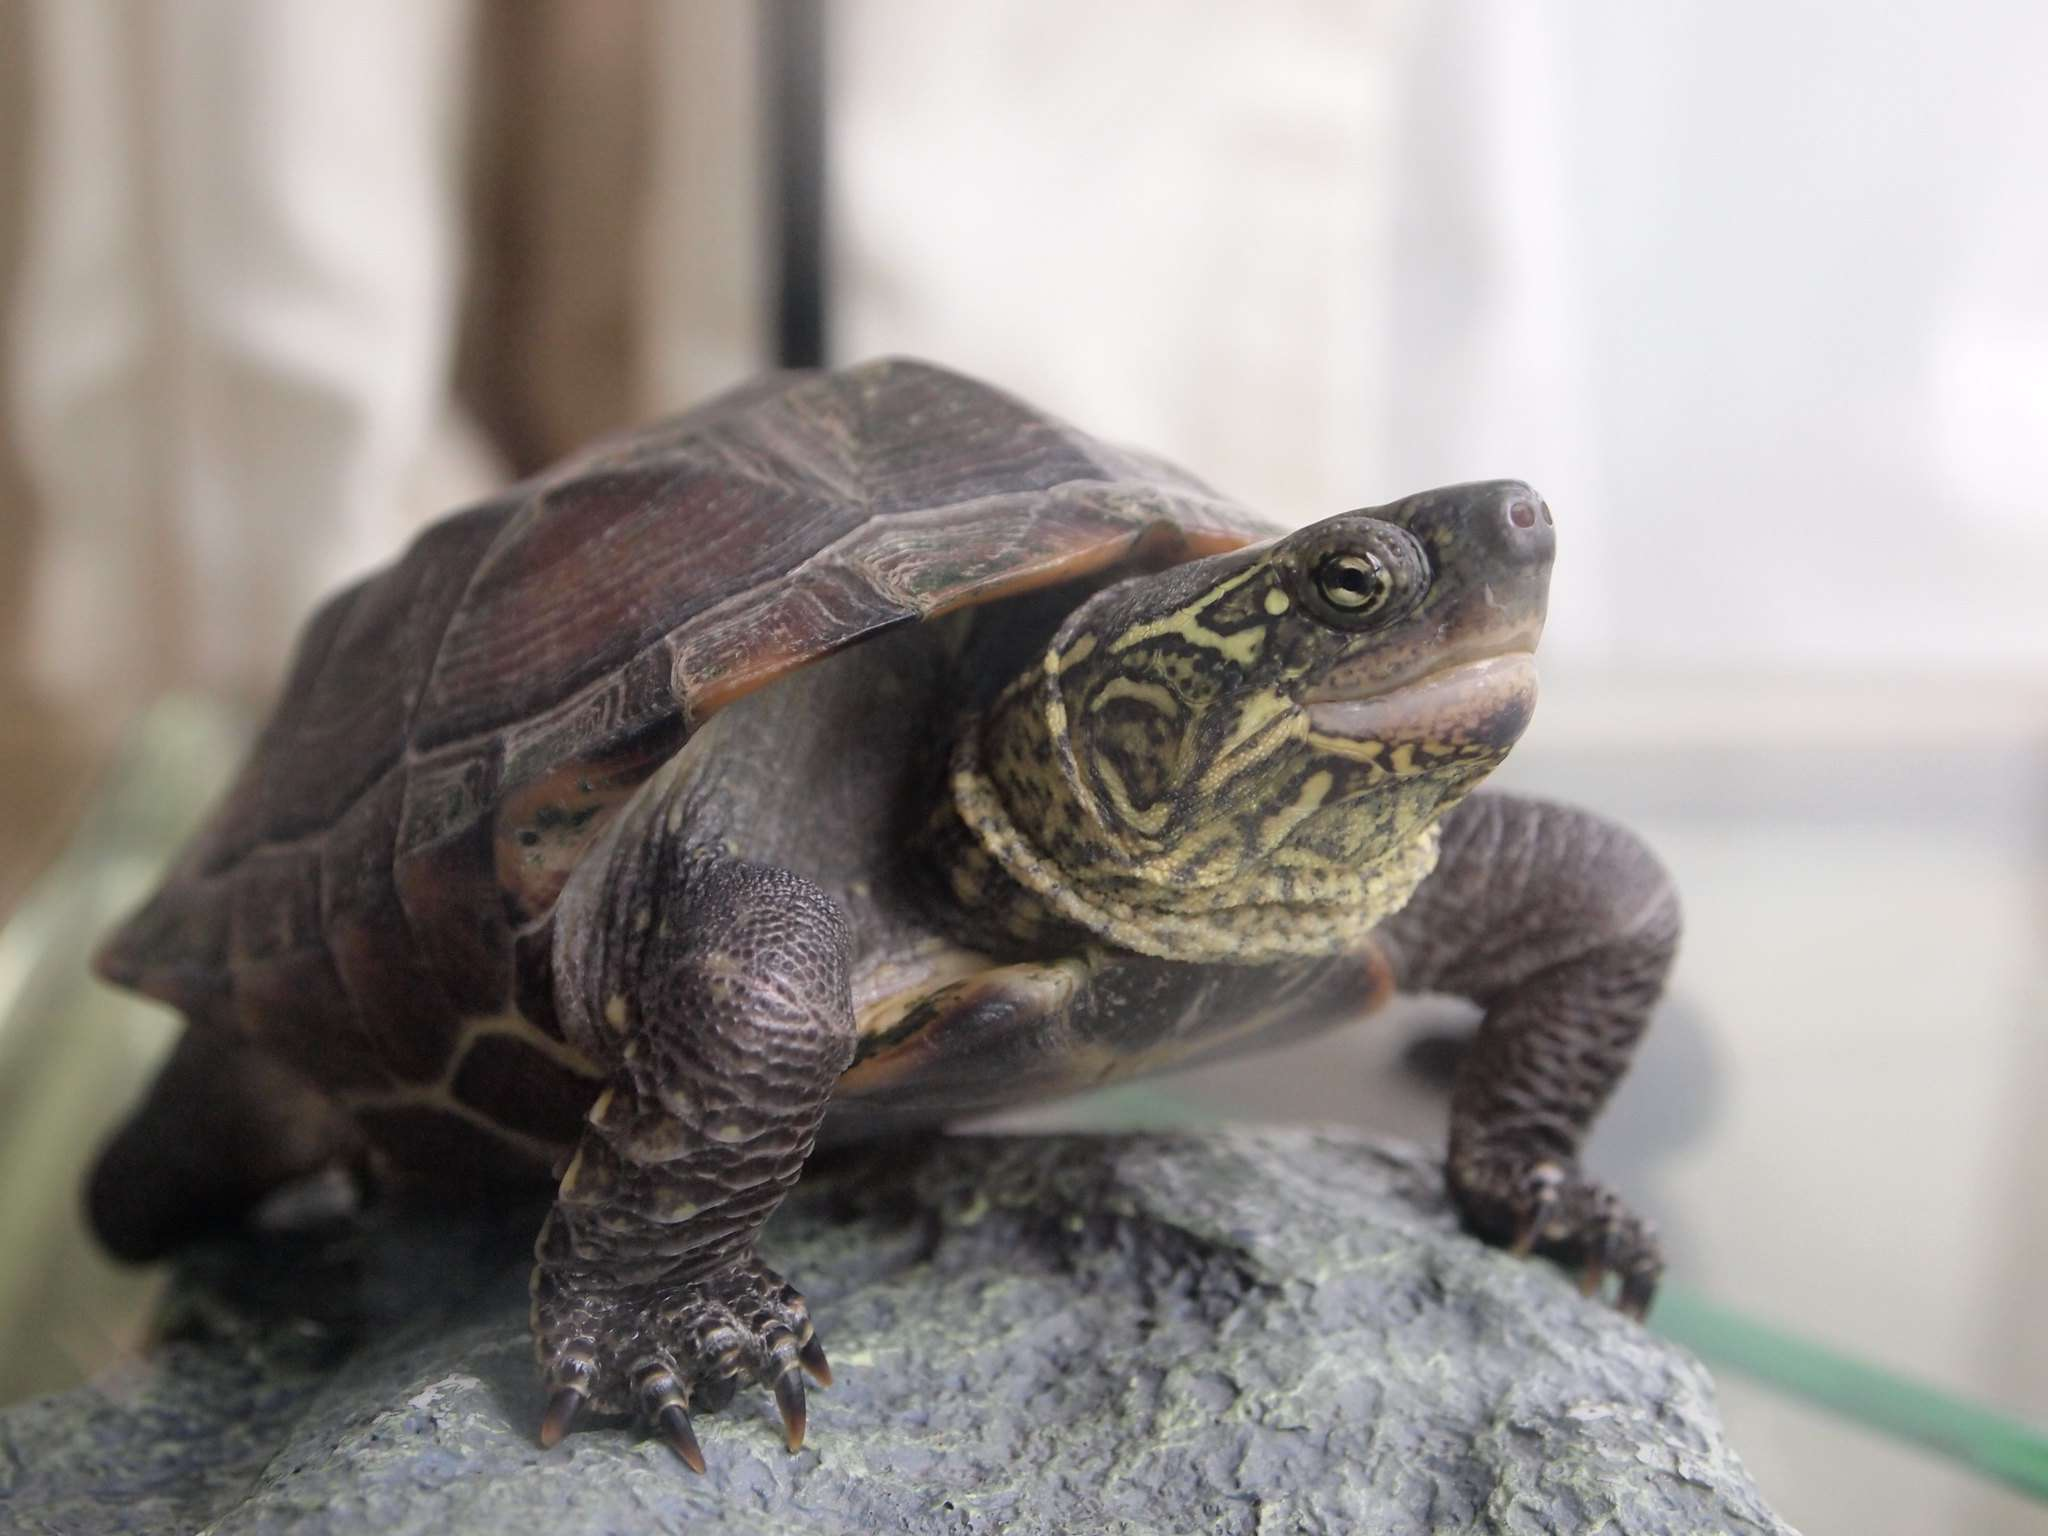 Reeve's Turtle basking on a rock